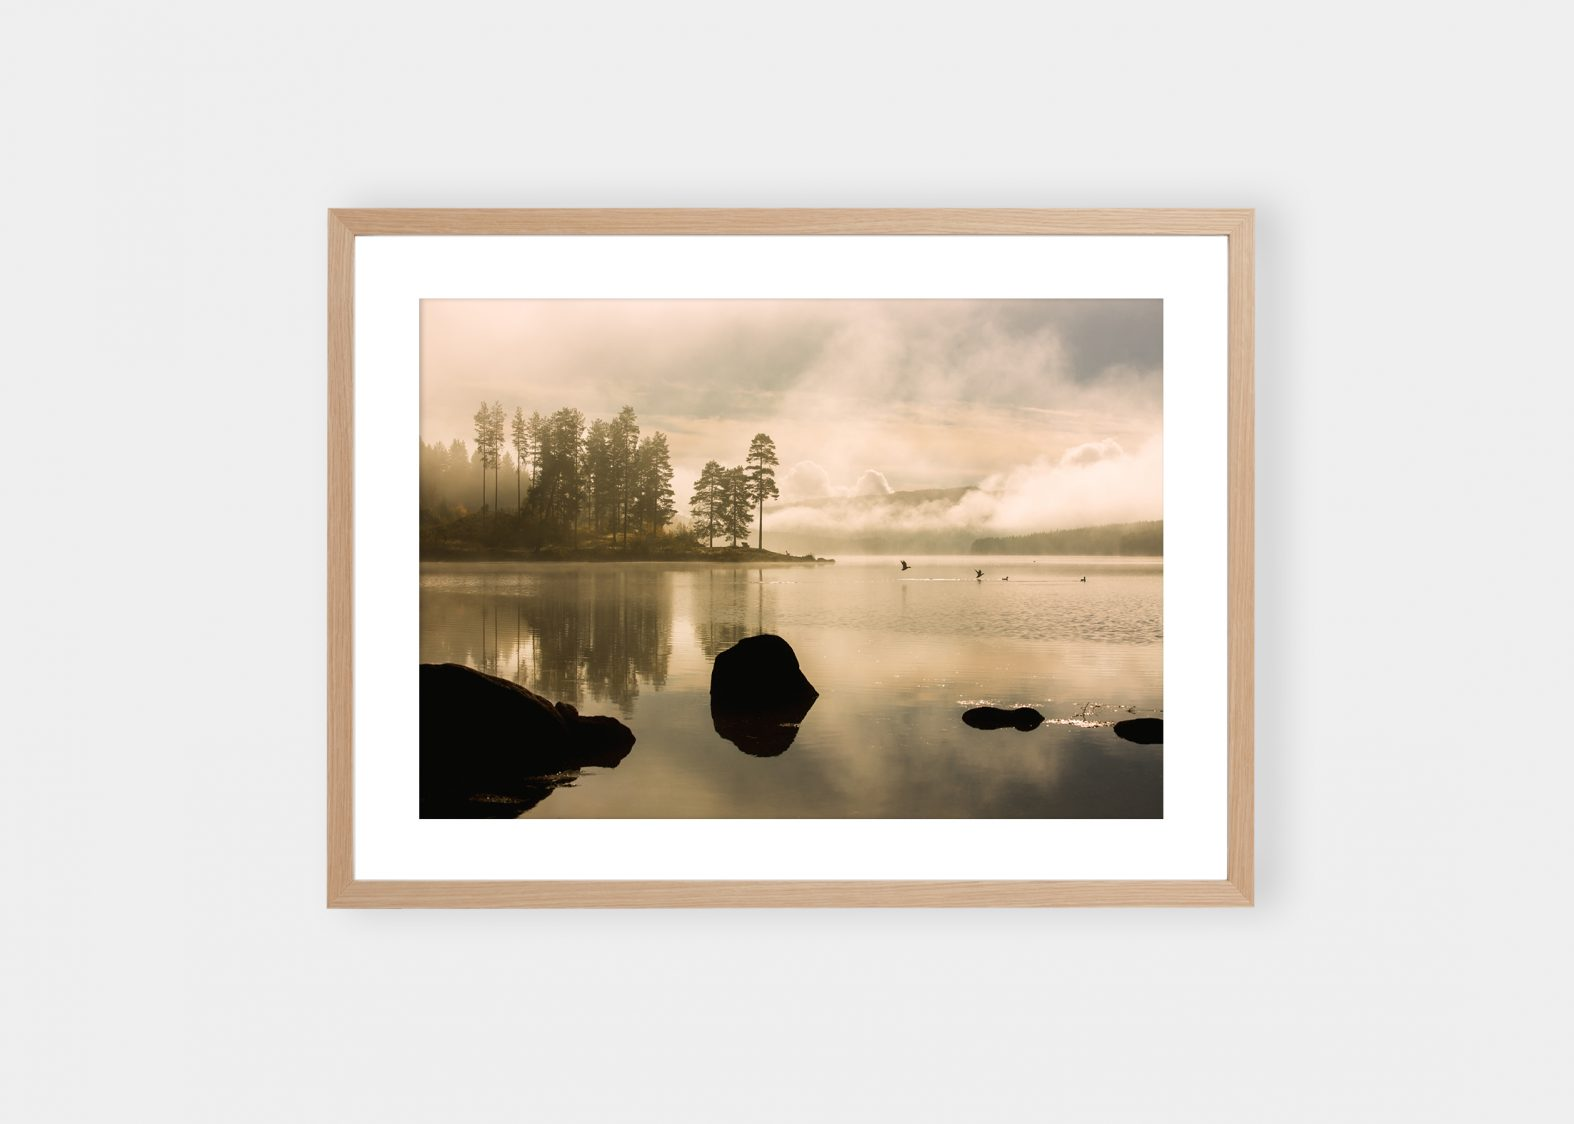 Break at The Lake | Kjøp Fine Art fotokunst på nett | Stian Gregersen